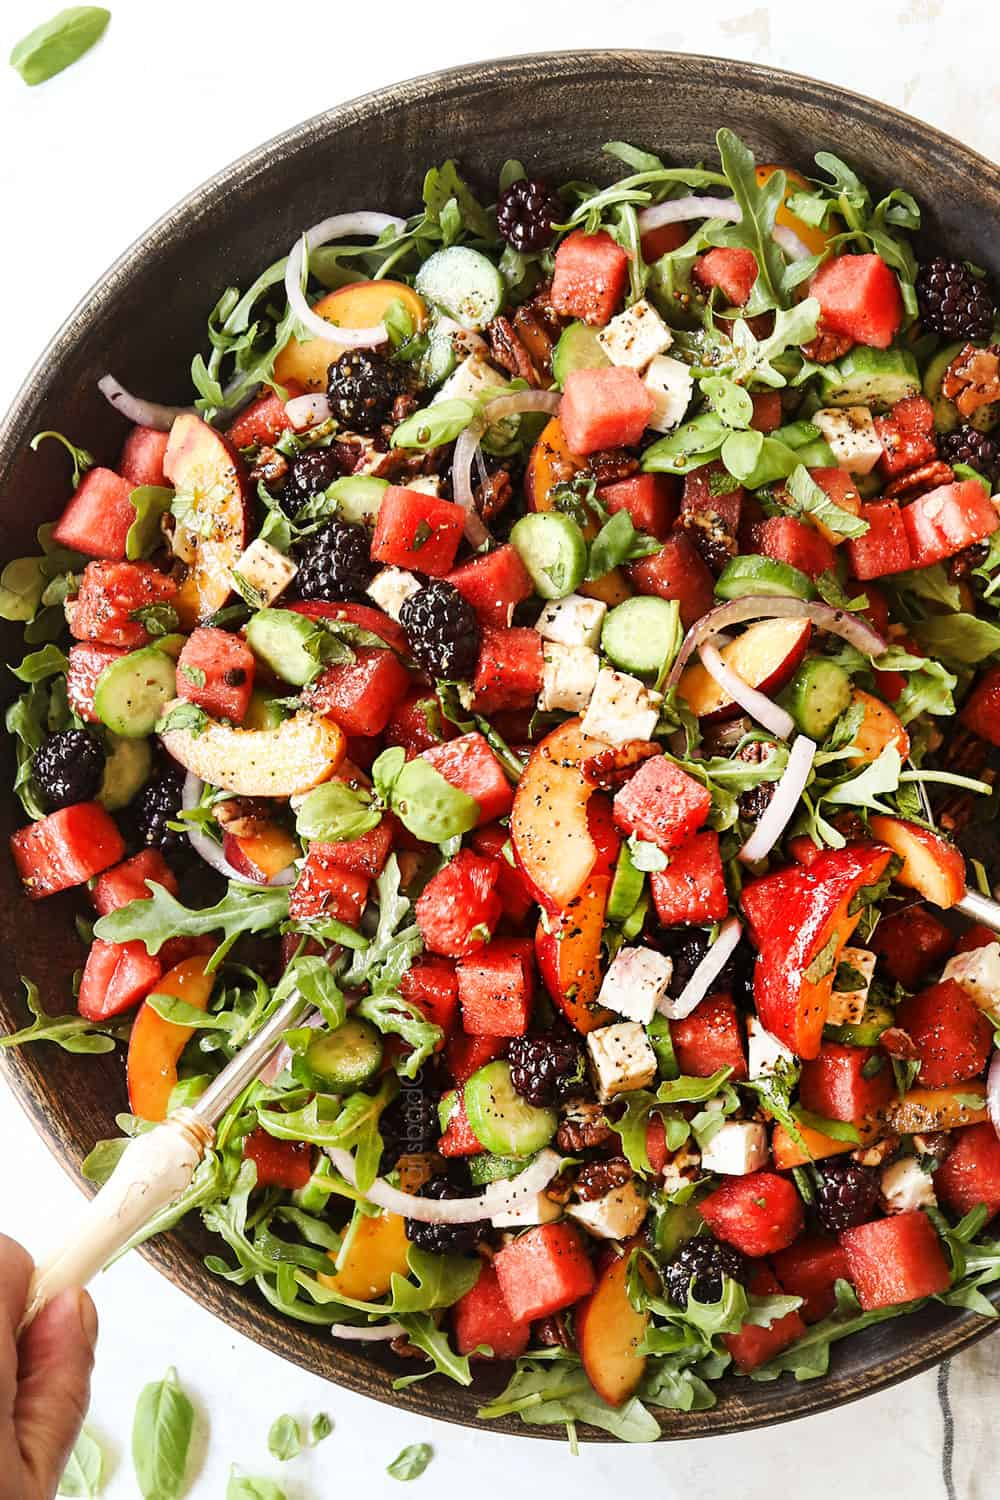 showing how to make watermelon salad recipe by tossing salad together in a large bowl